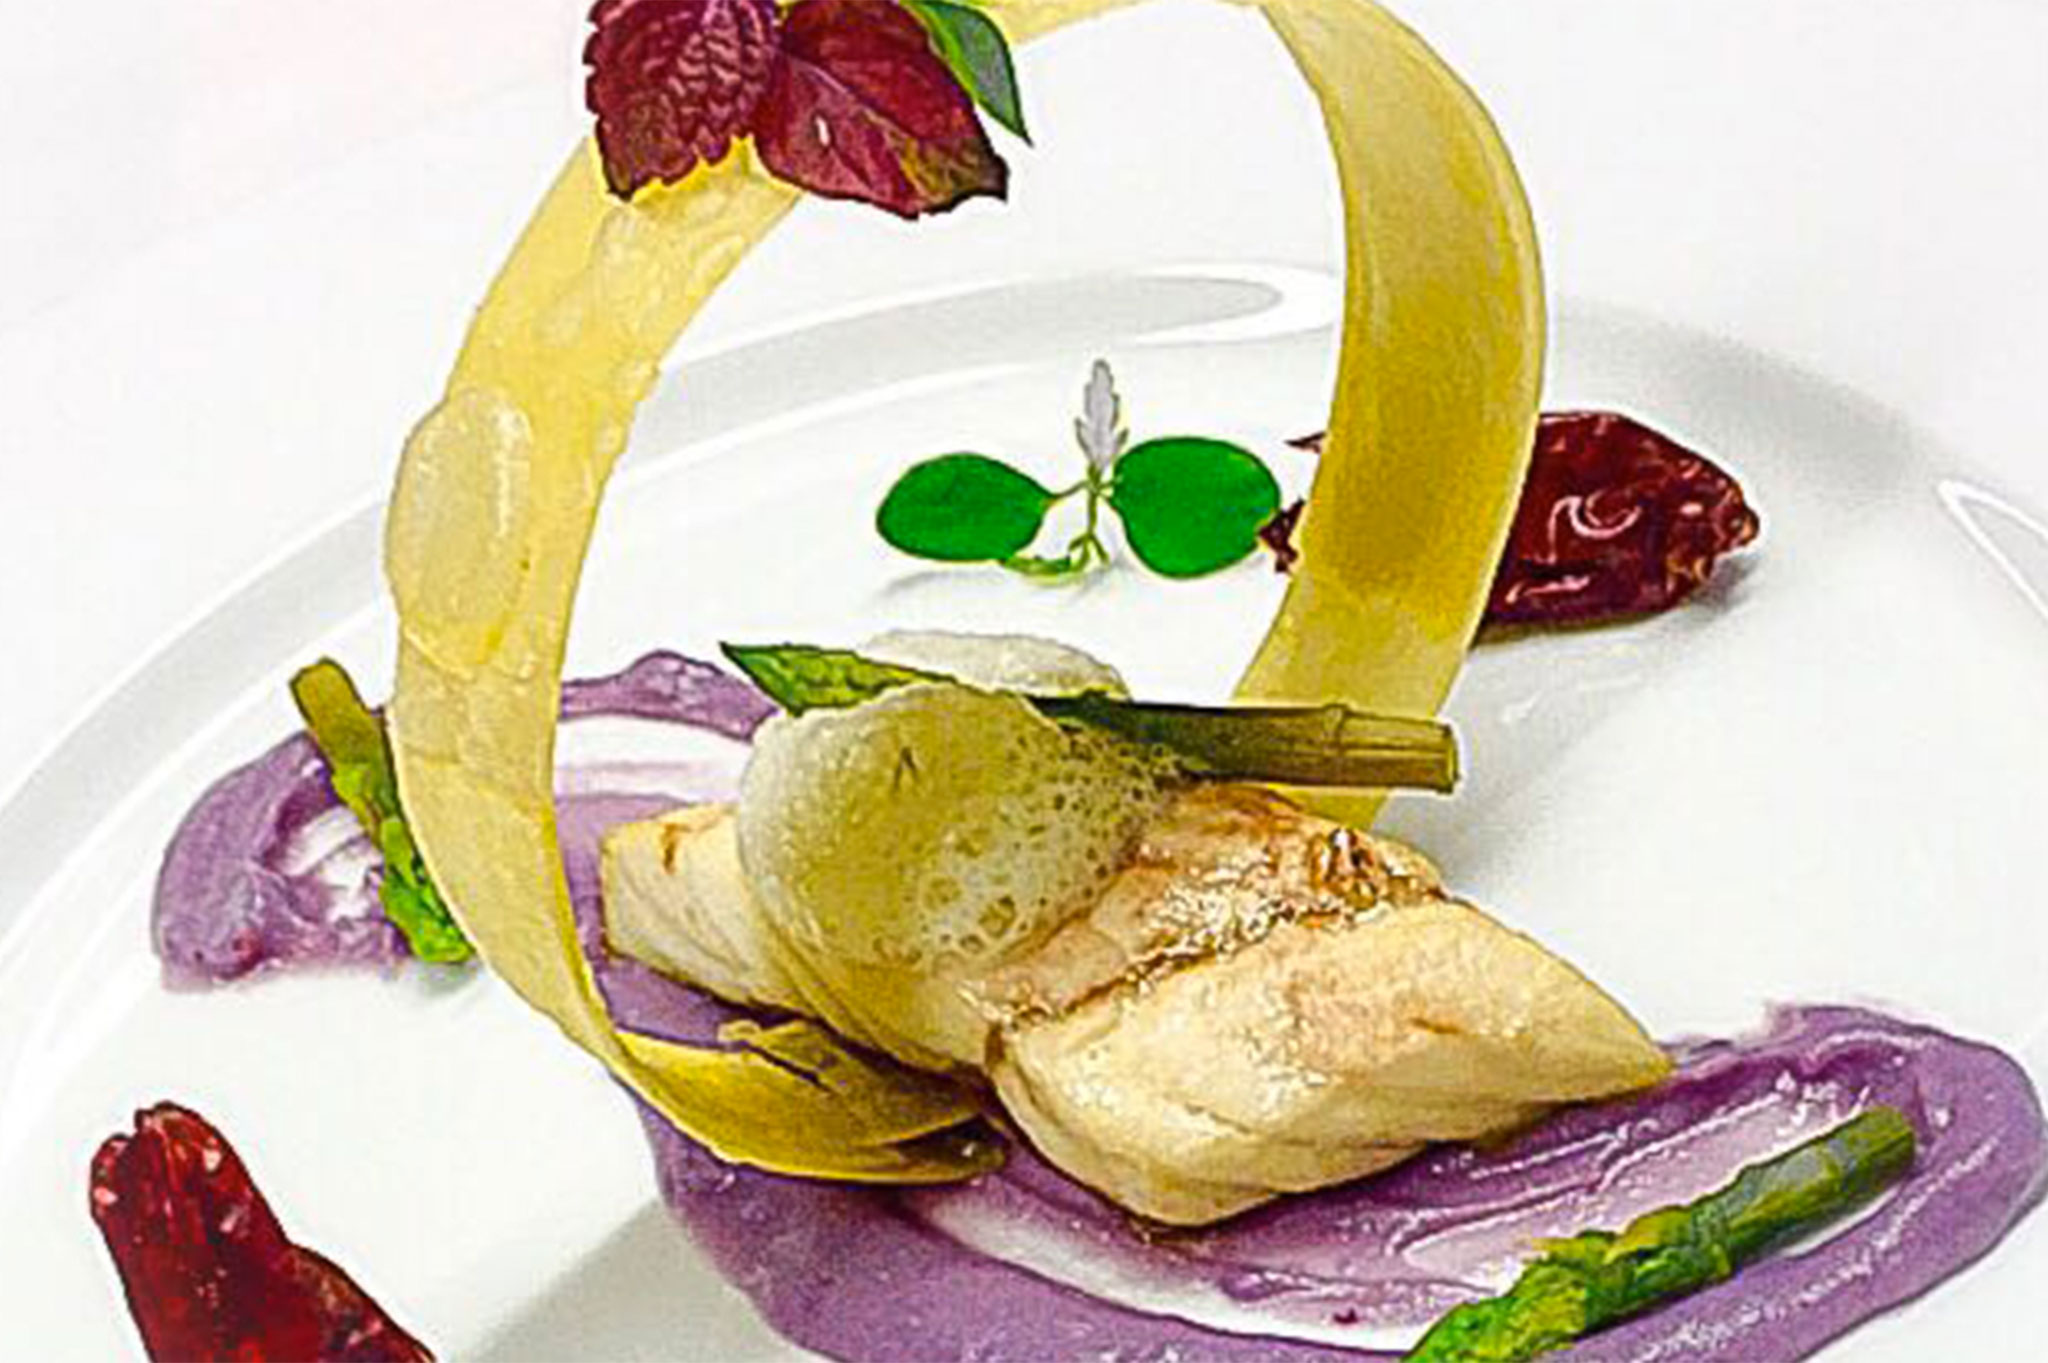 Metropole - Baked sea bass fillet - photo 1